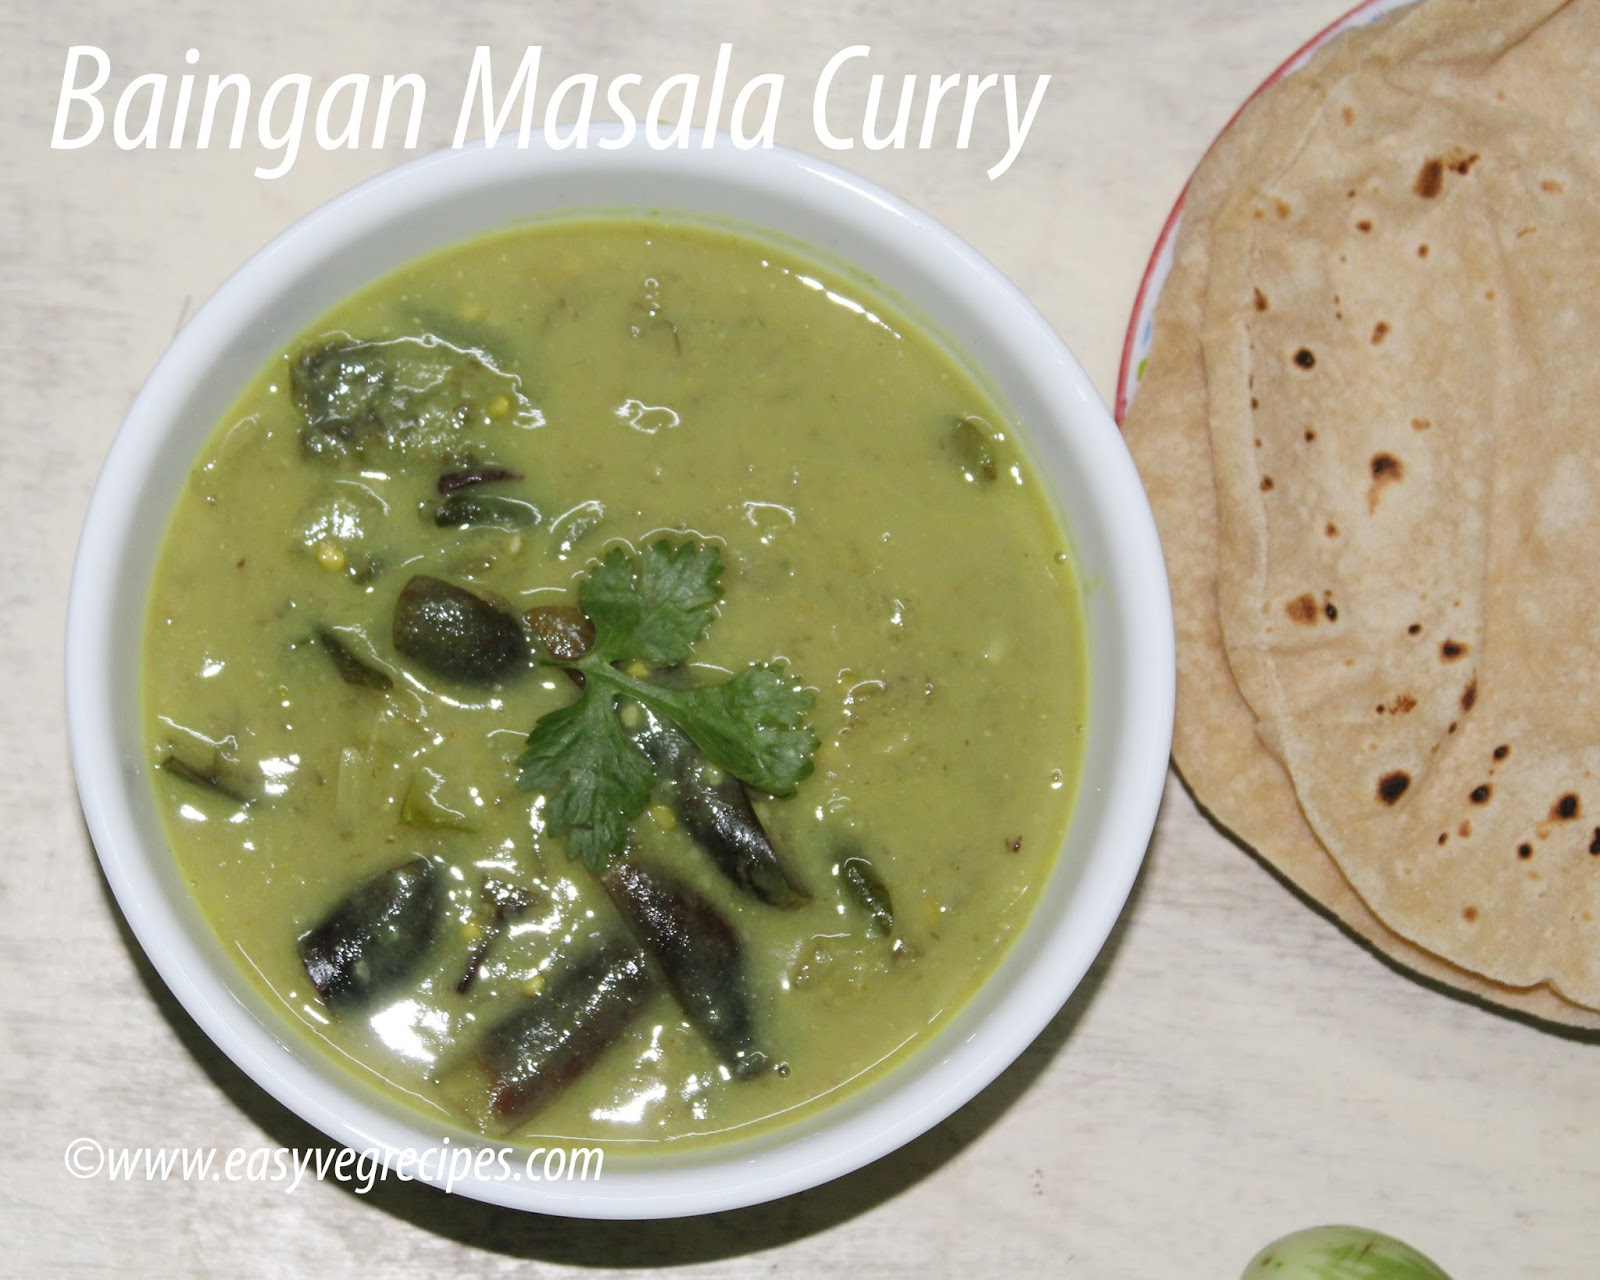 Baingan Masala Curry